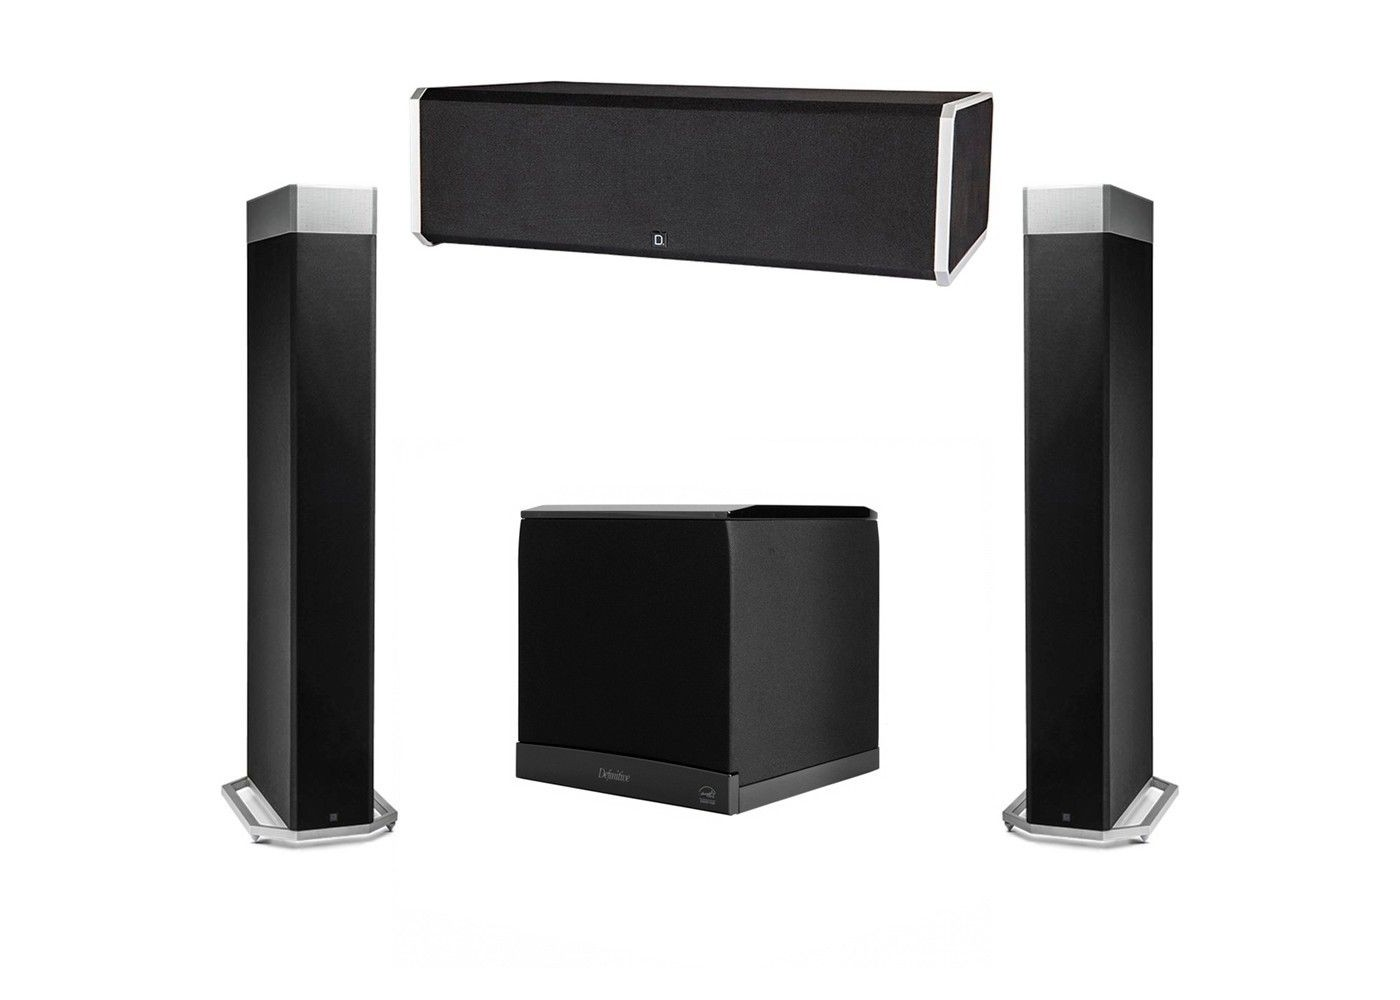 definitive technology 3.1 system with 2 bp9080x tower speakers, 1